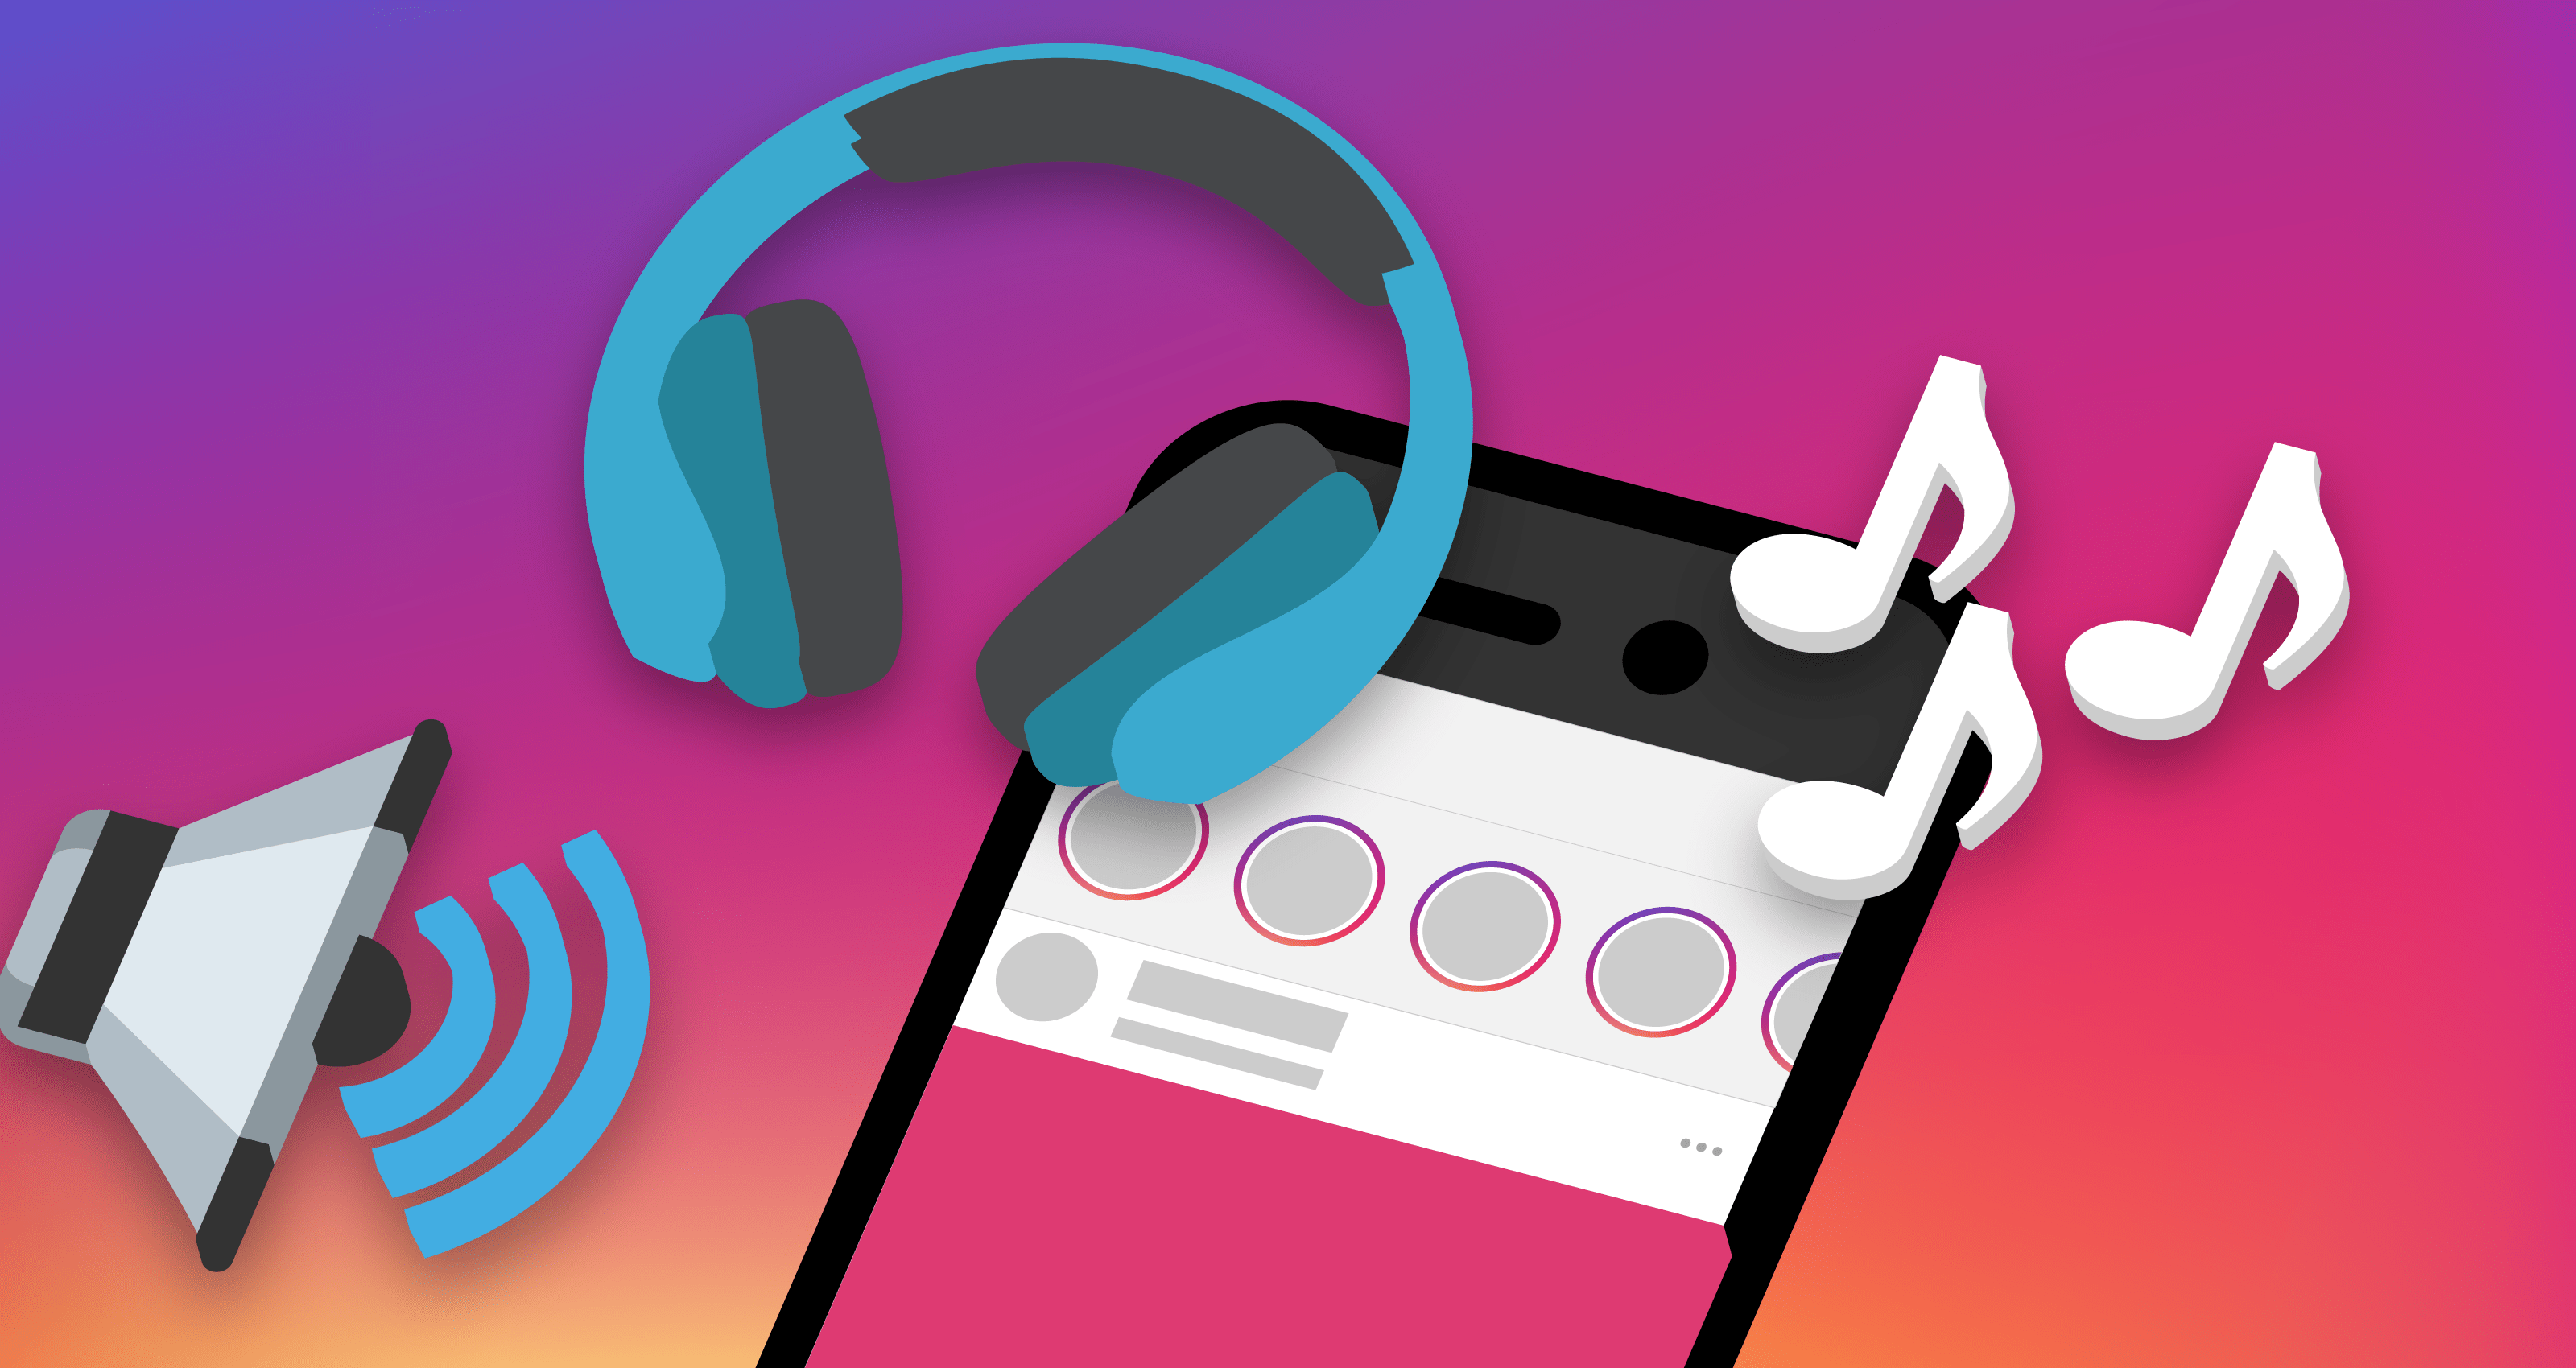 Instagram code reveals upcoming music feature   TechCrunch Instagram code reveals upcoming music feature